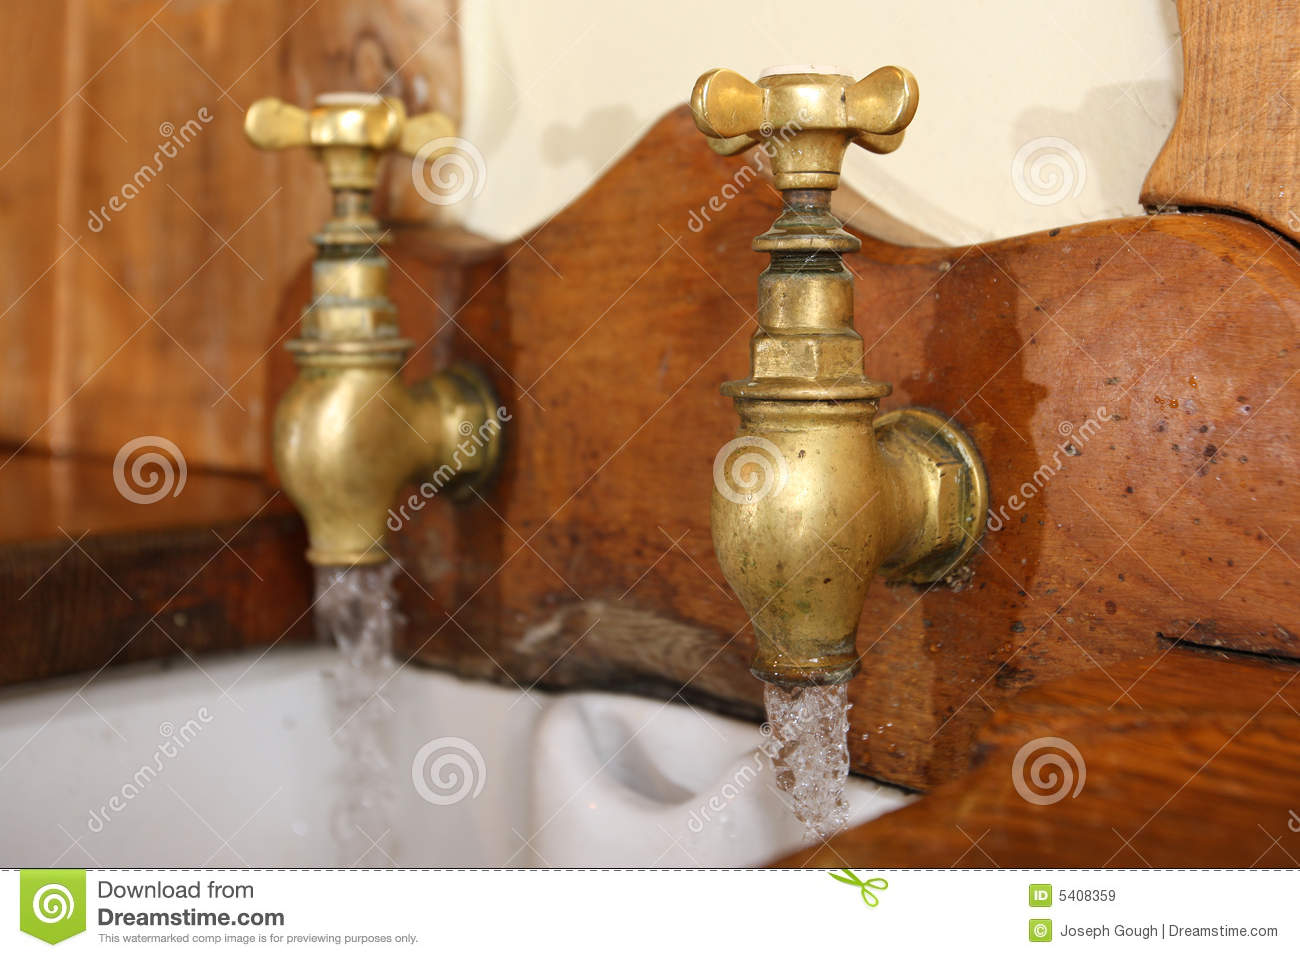 Vintage Taps stock image. Image of sink, rustic, style - 5408359